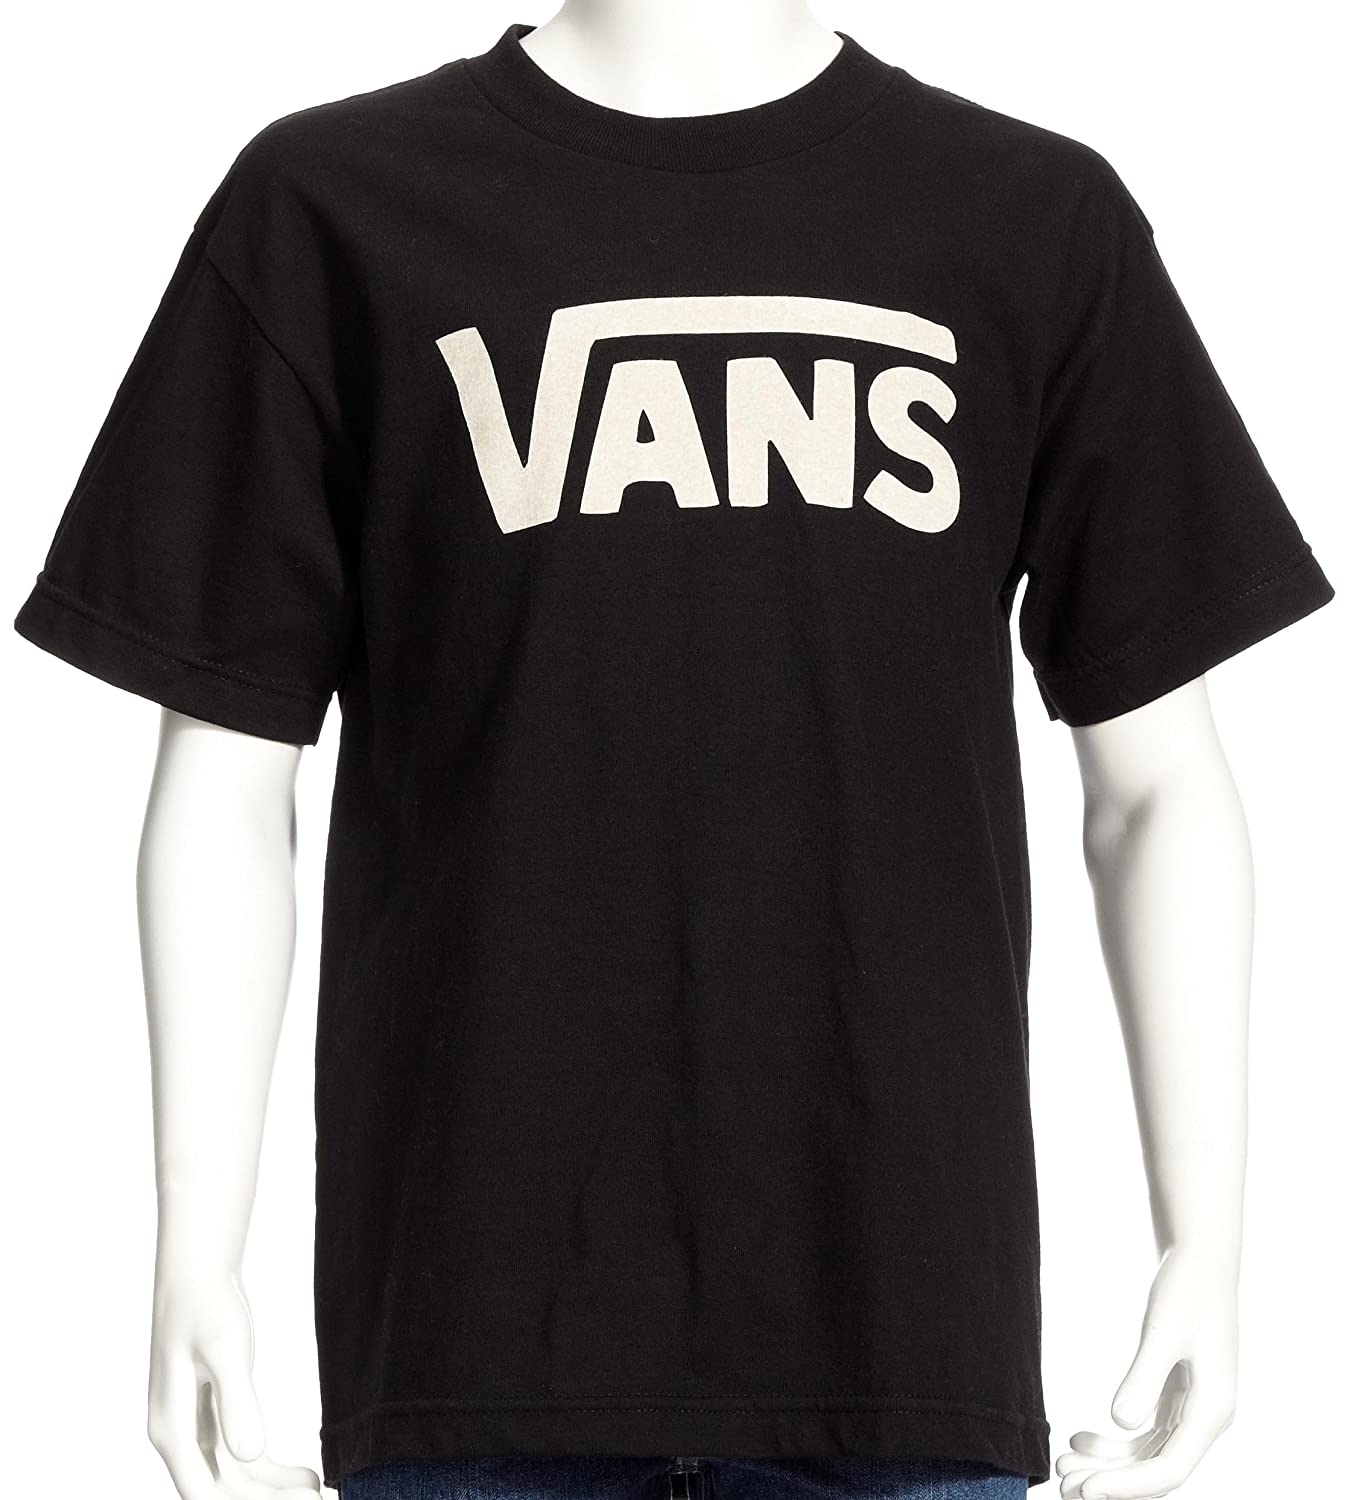 T shirt white black - Vans Boy S Vans Classic Short Sleeve T Shirt White White Black X Large Vans Amazon Co Uk Clothing